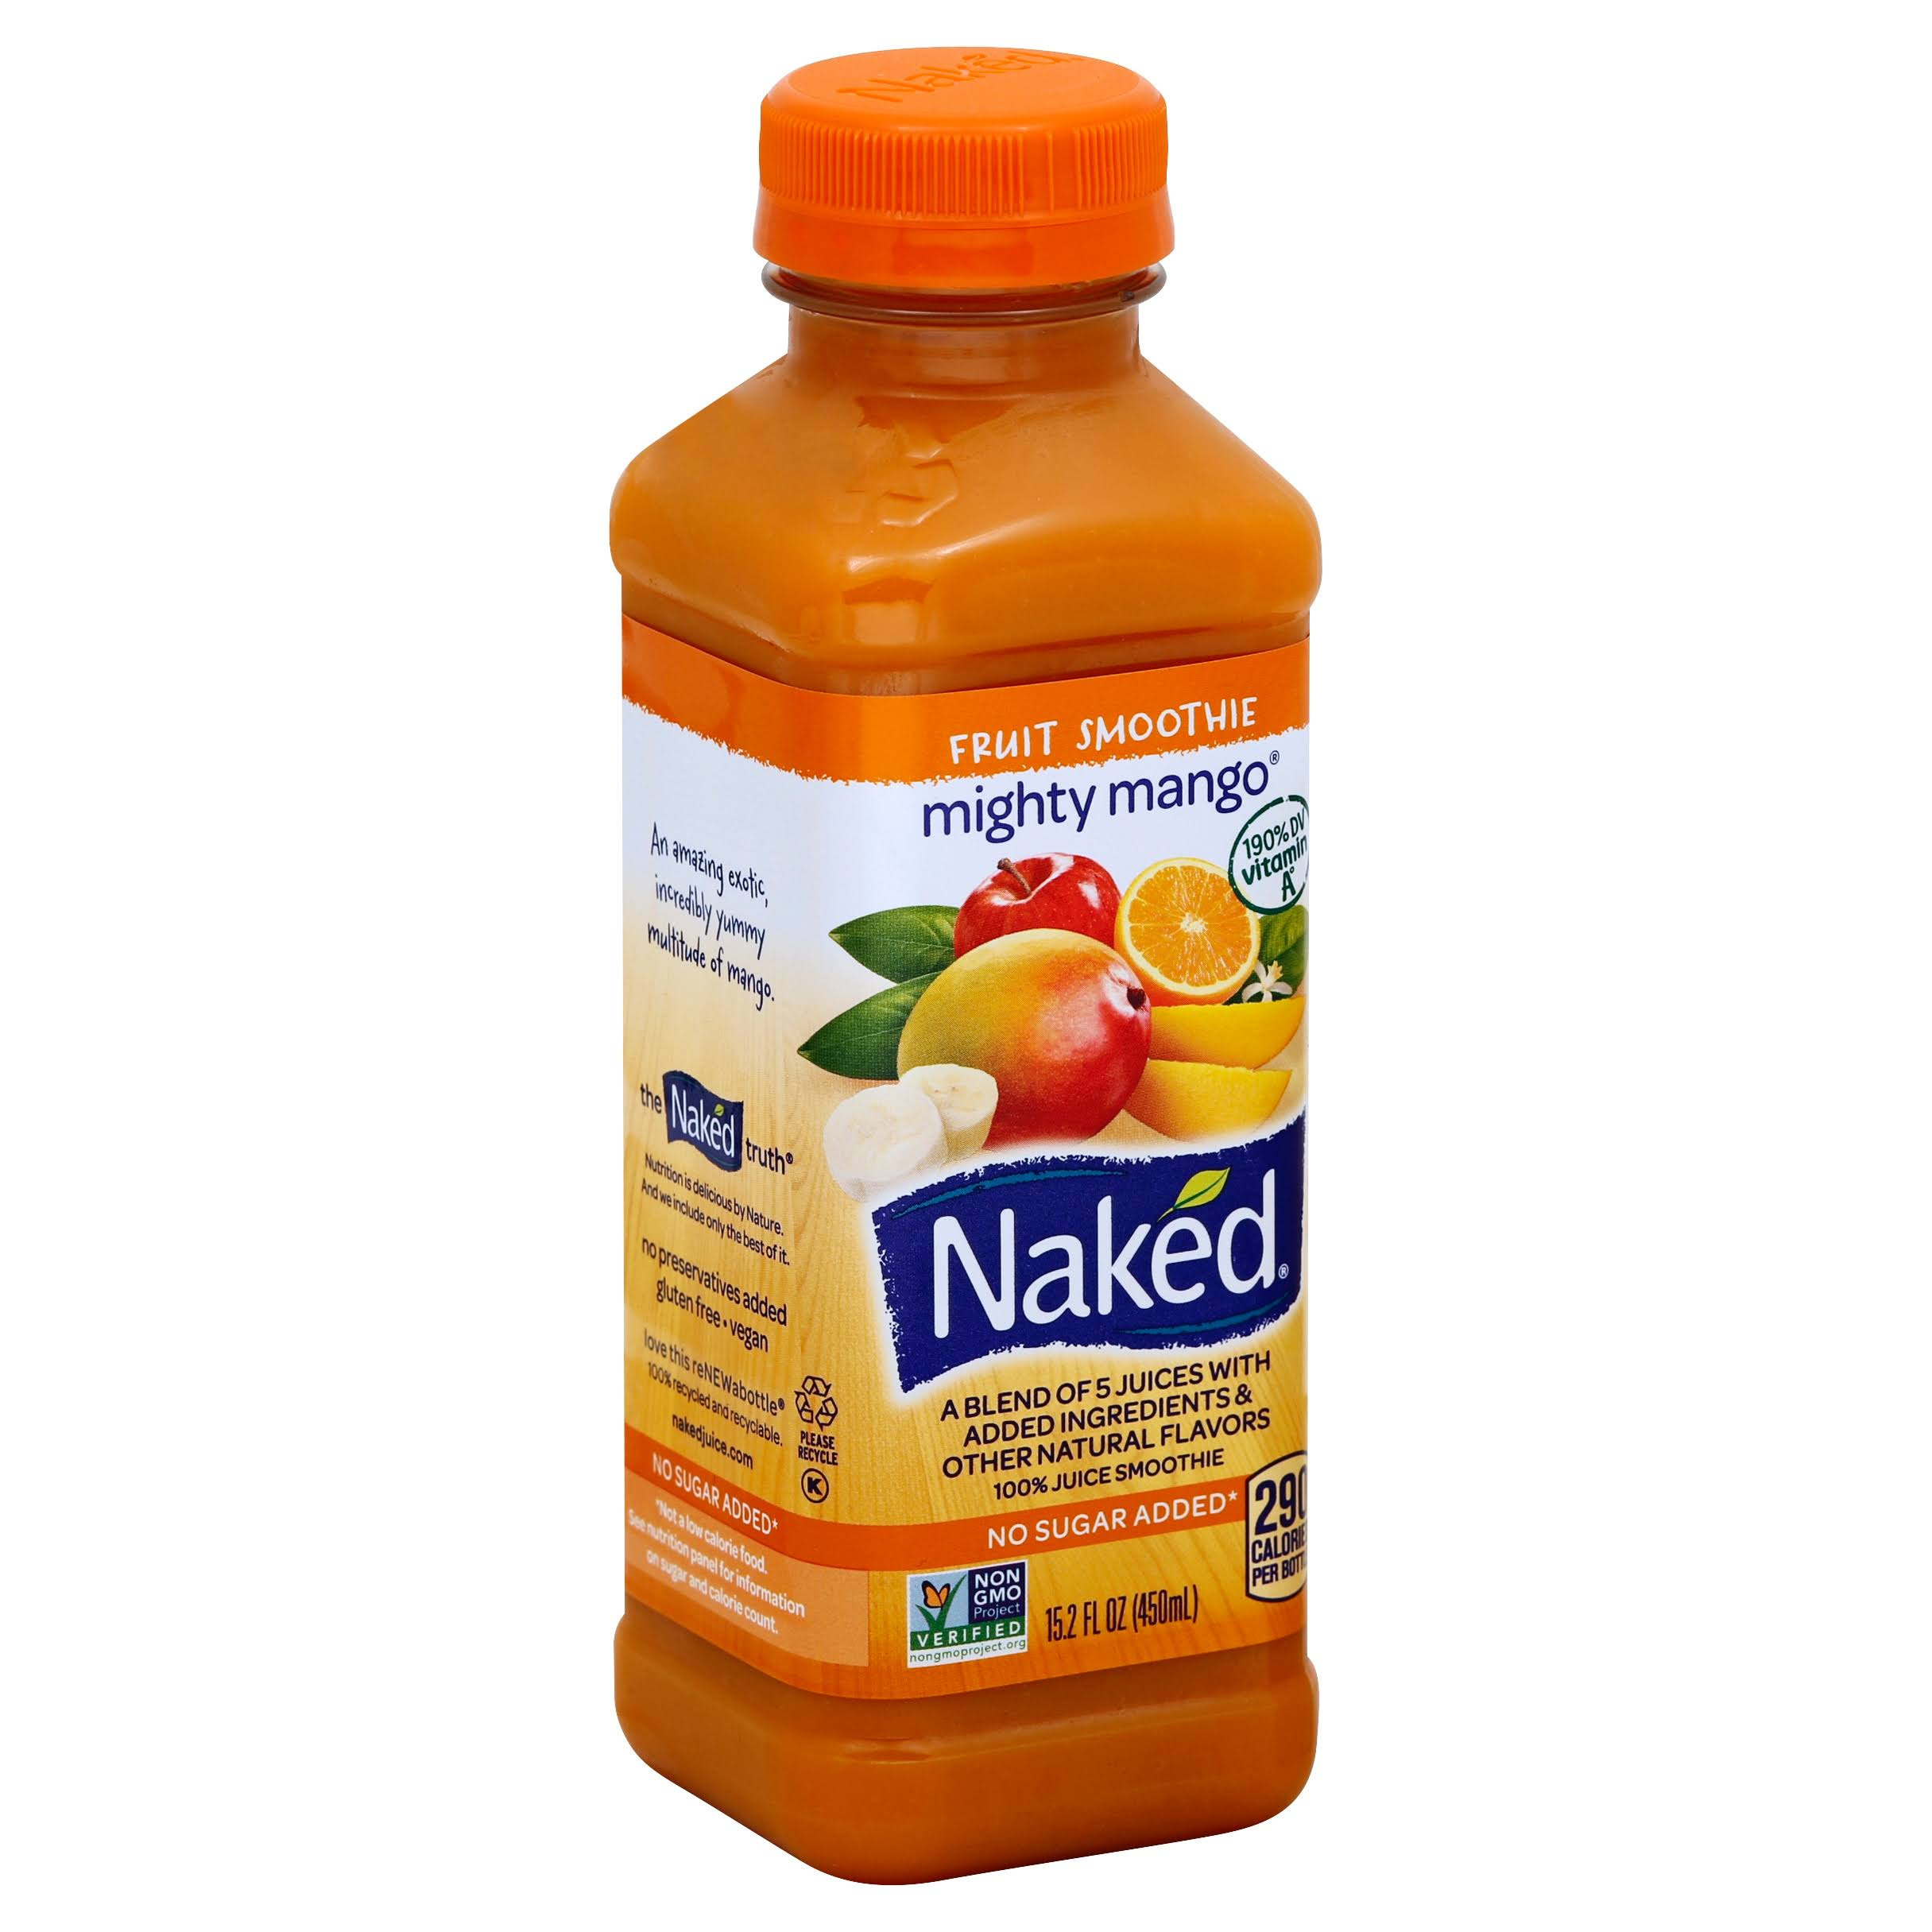 Naked Mighty Mango Juice - 15.20oz